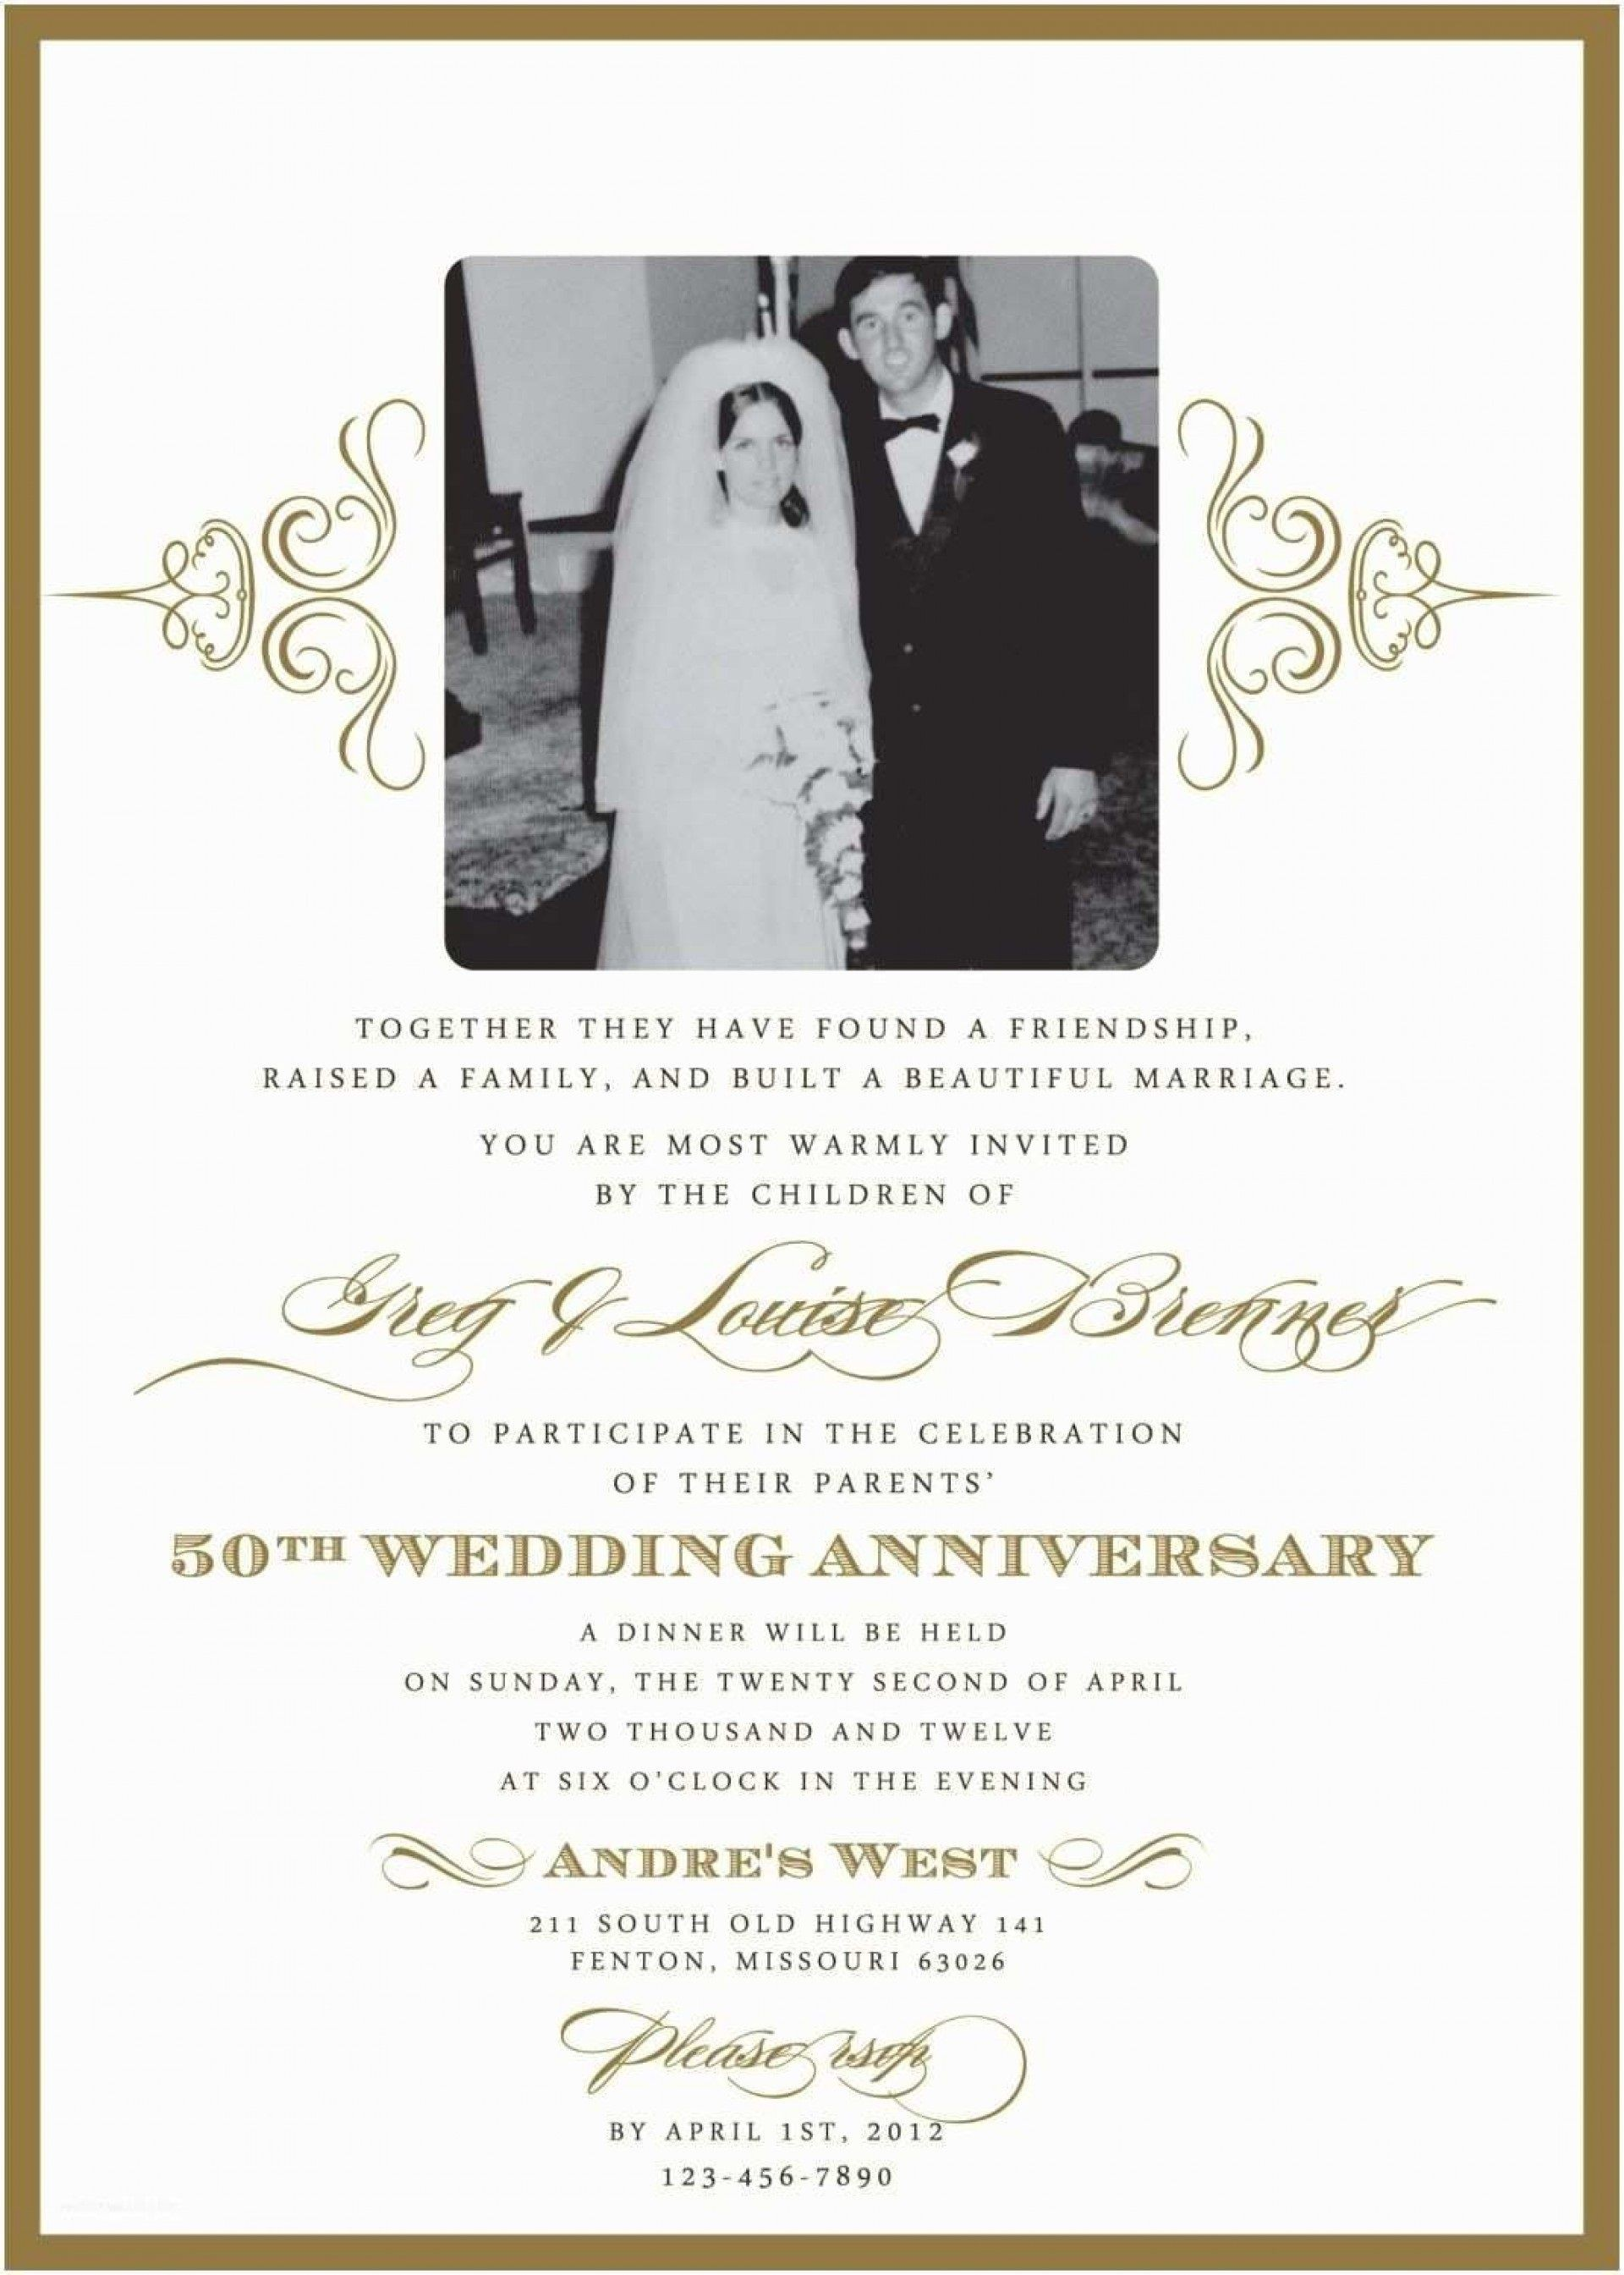 008 Excellent 50th Wedding Anniversary Invitation Template Microsoft Word Example  Free1920